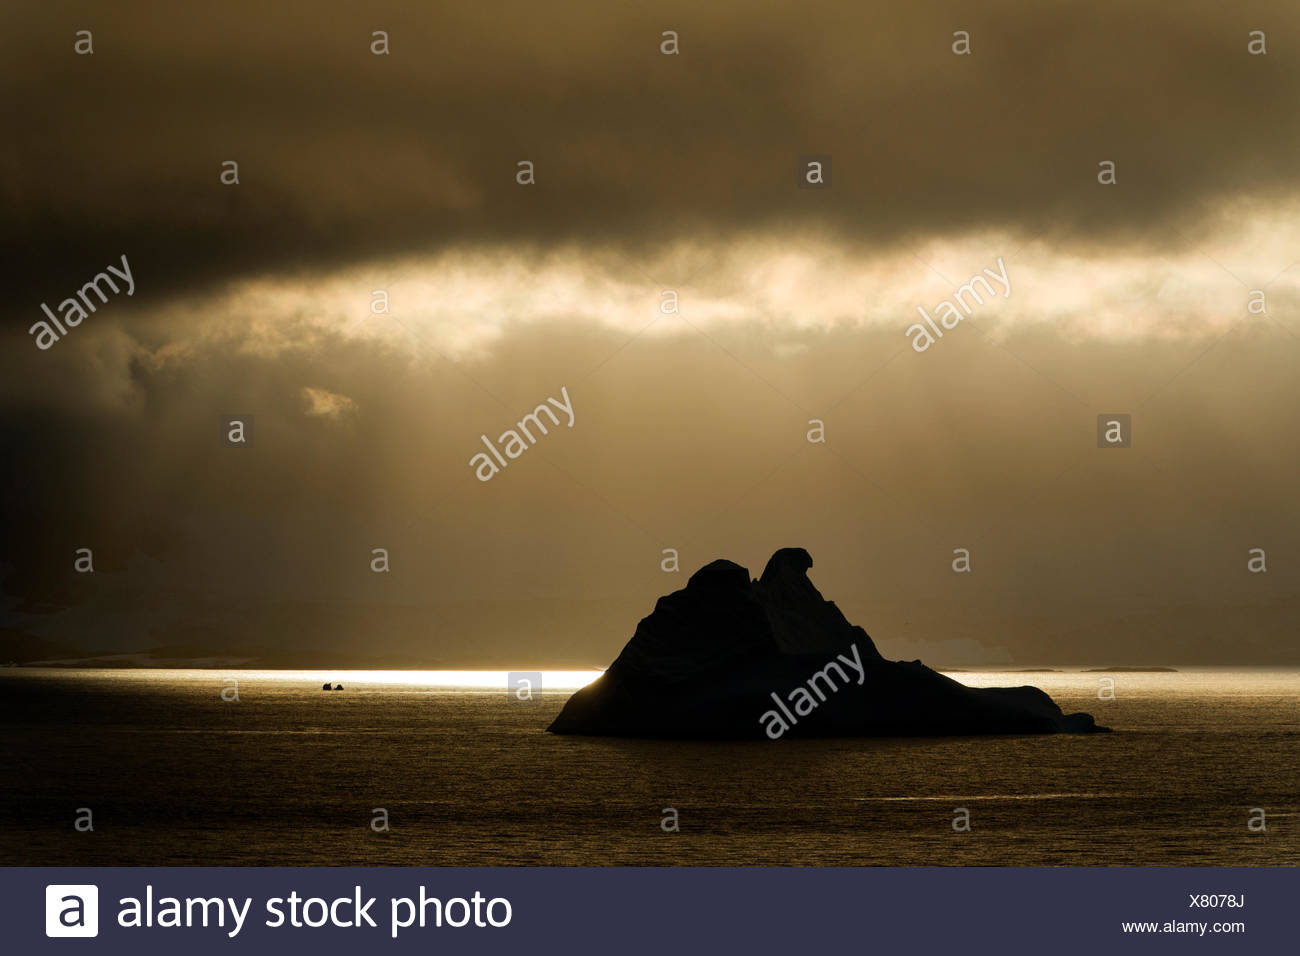 Sunlight shining through a hole in the clouds, silhouette of an iceberg at the front, Errera Channel, Arctowski Peninsula Stock Photo